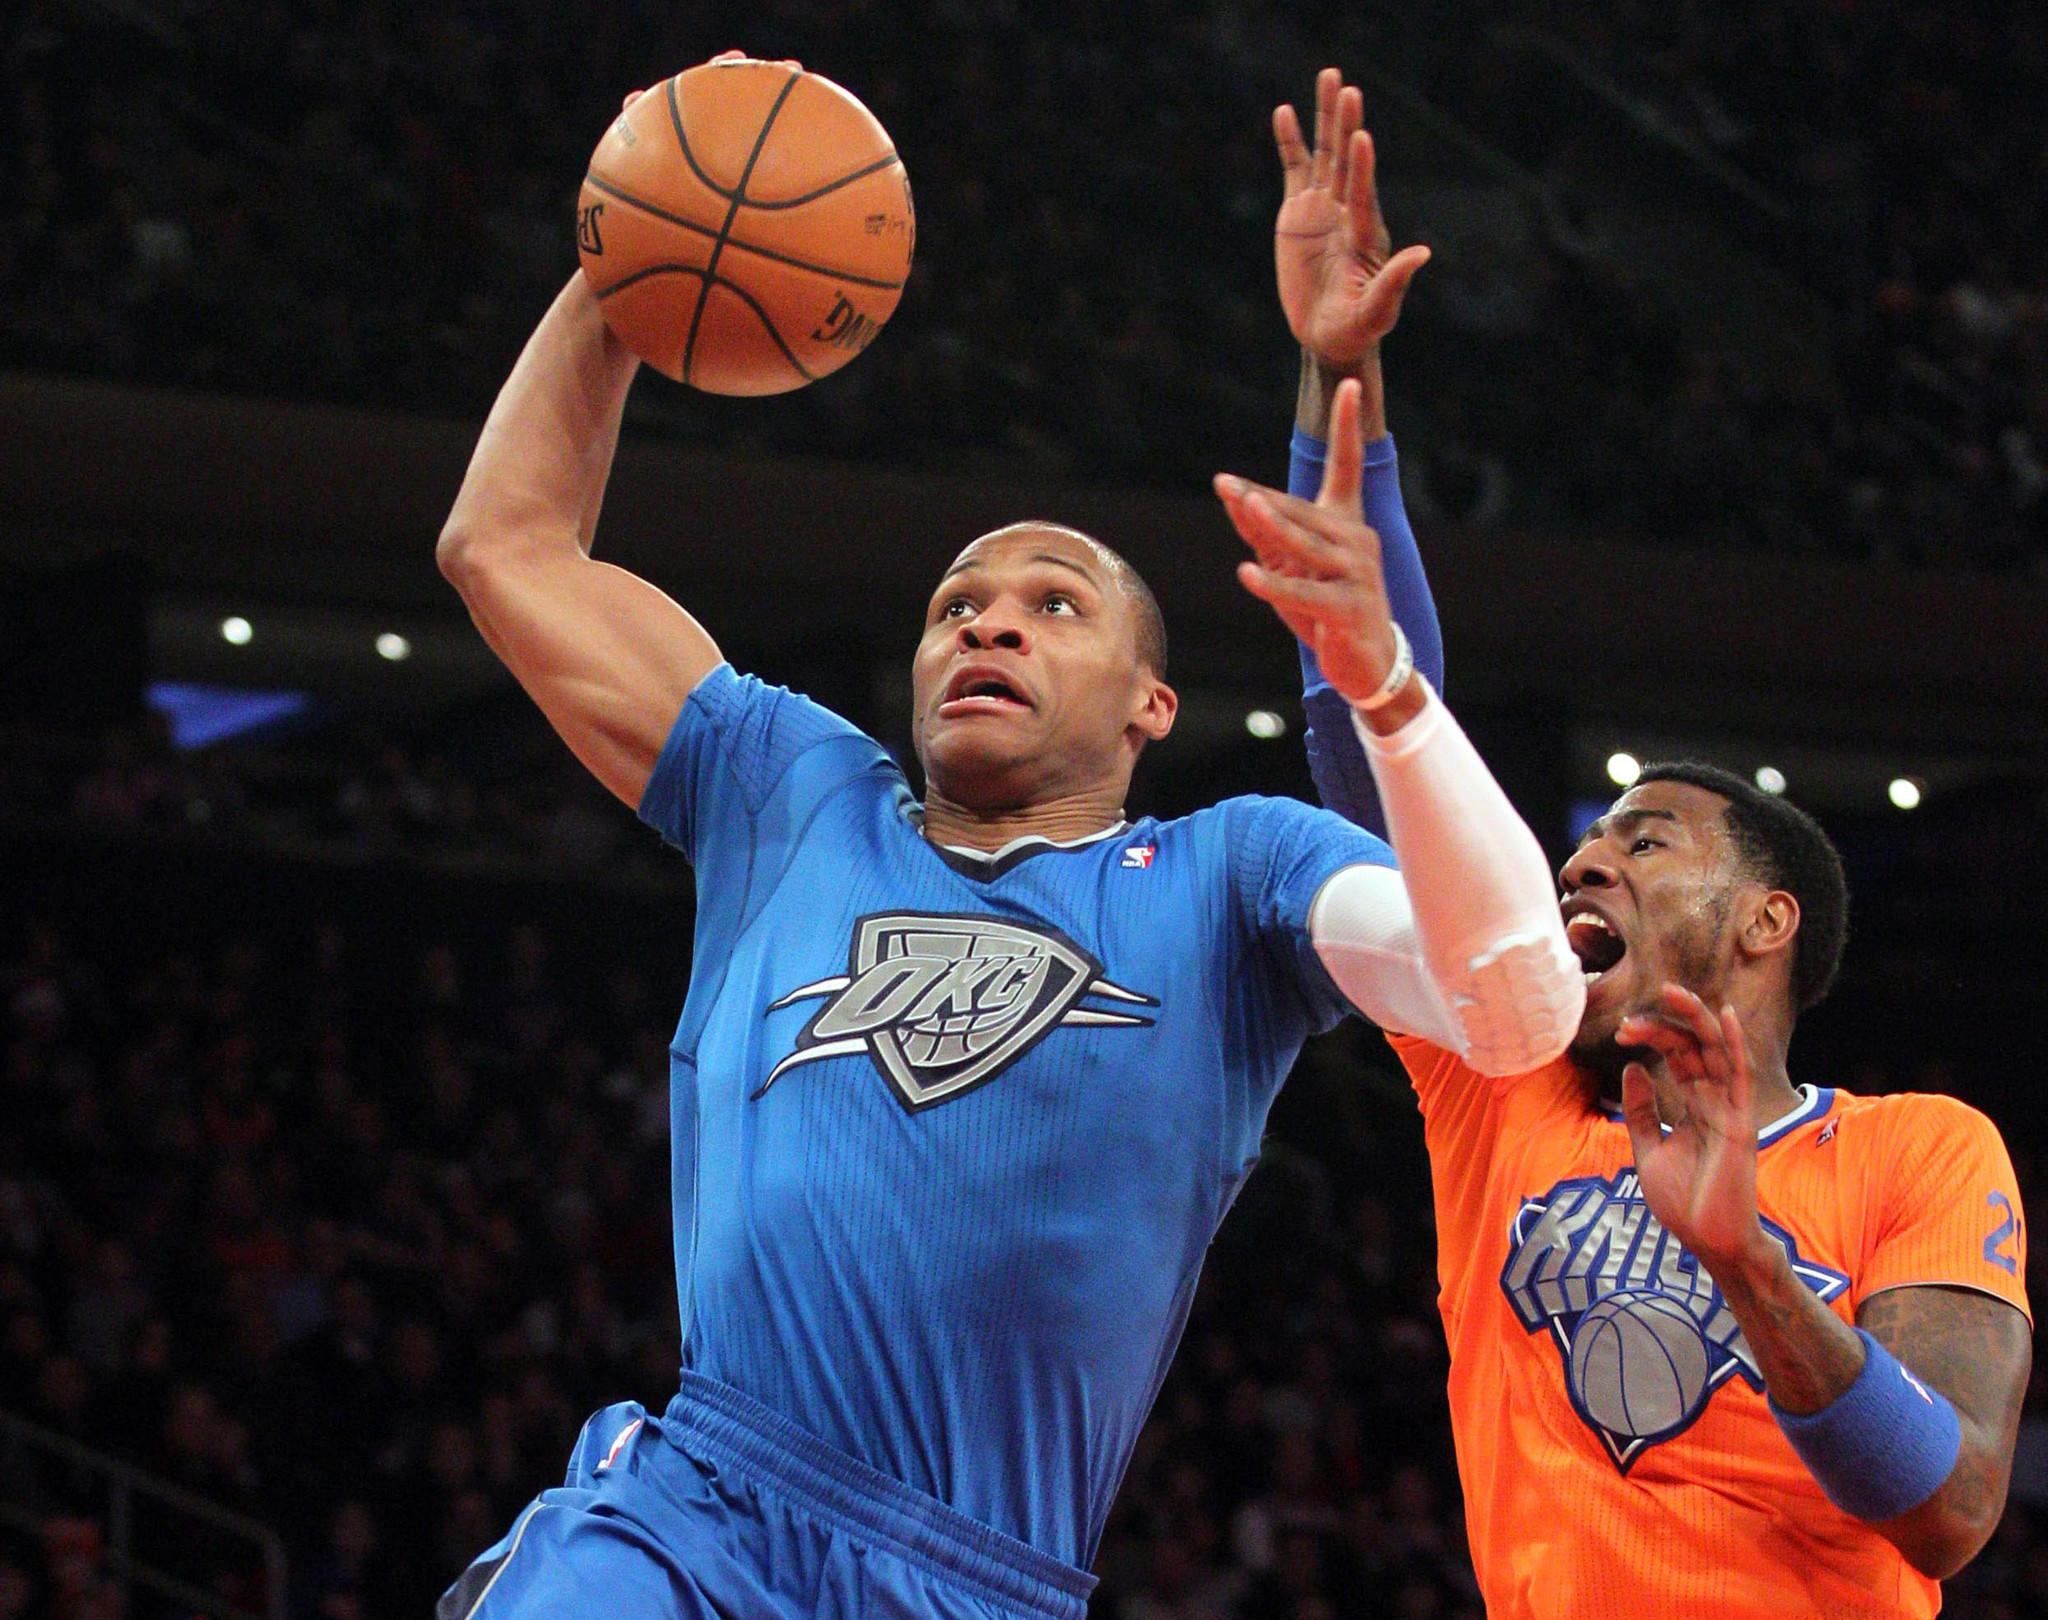 The Thunder's Russell Westbrook drives past the Knicks' Iman Shumpert during the first quarter.